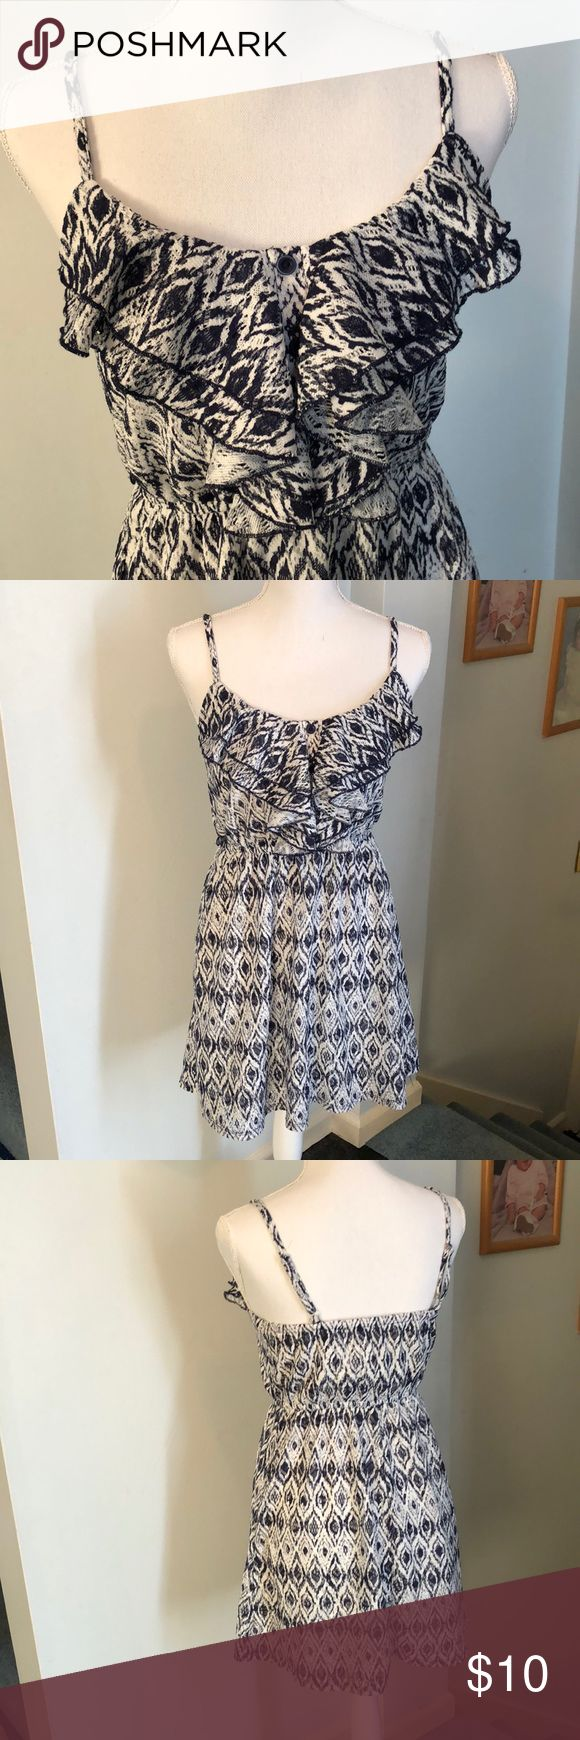 Sequin Hearts Navy Blue and White Pattern Dress Women's size Small Sequin Hearts Dress has adjustable straps. Worn once, excellent condition no rips or stains & comes from a smoke free home! Same or next business day shipping on all purchases!💕 Sequin Hearts Dresses Midi